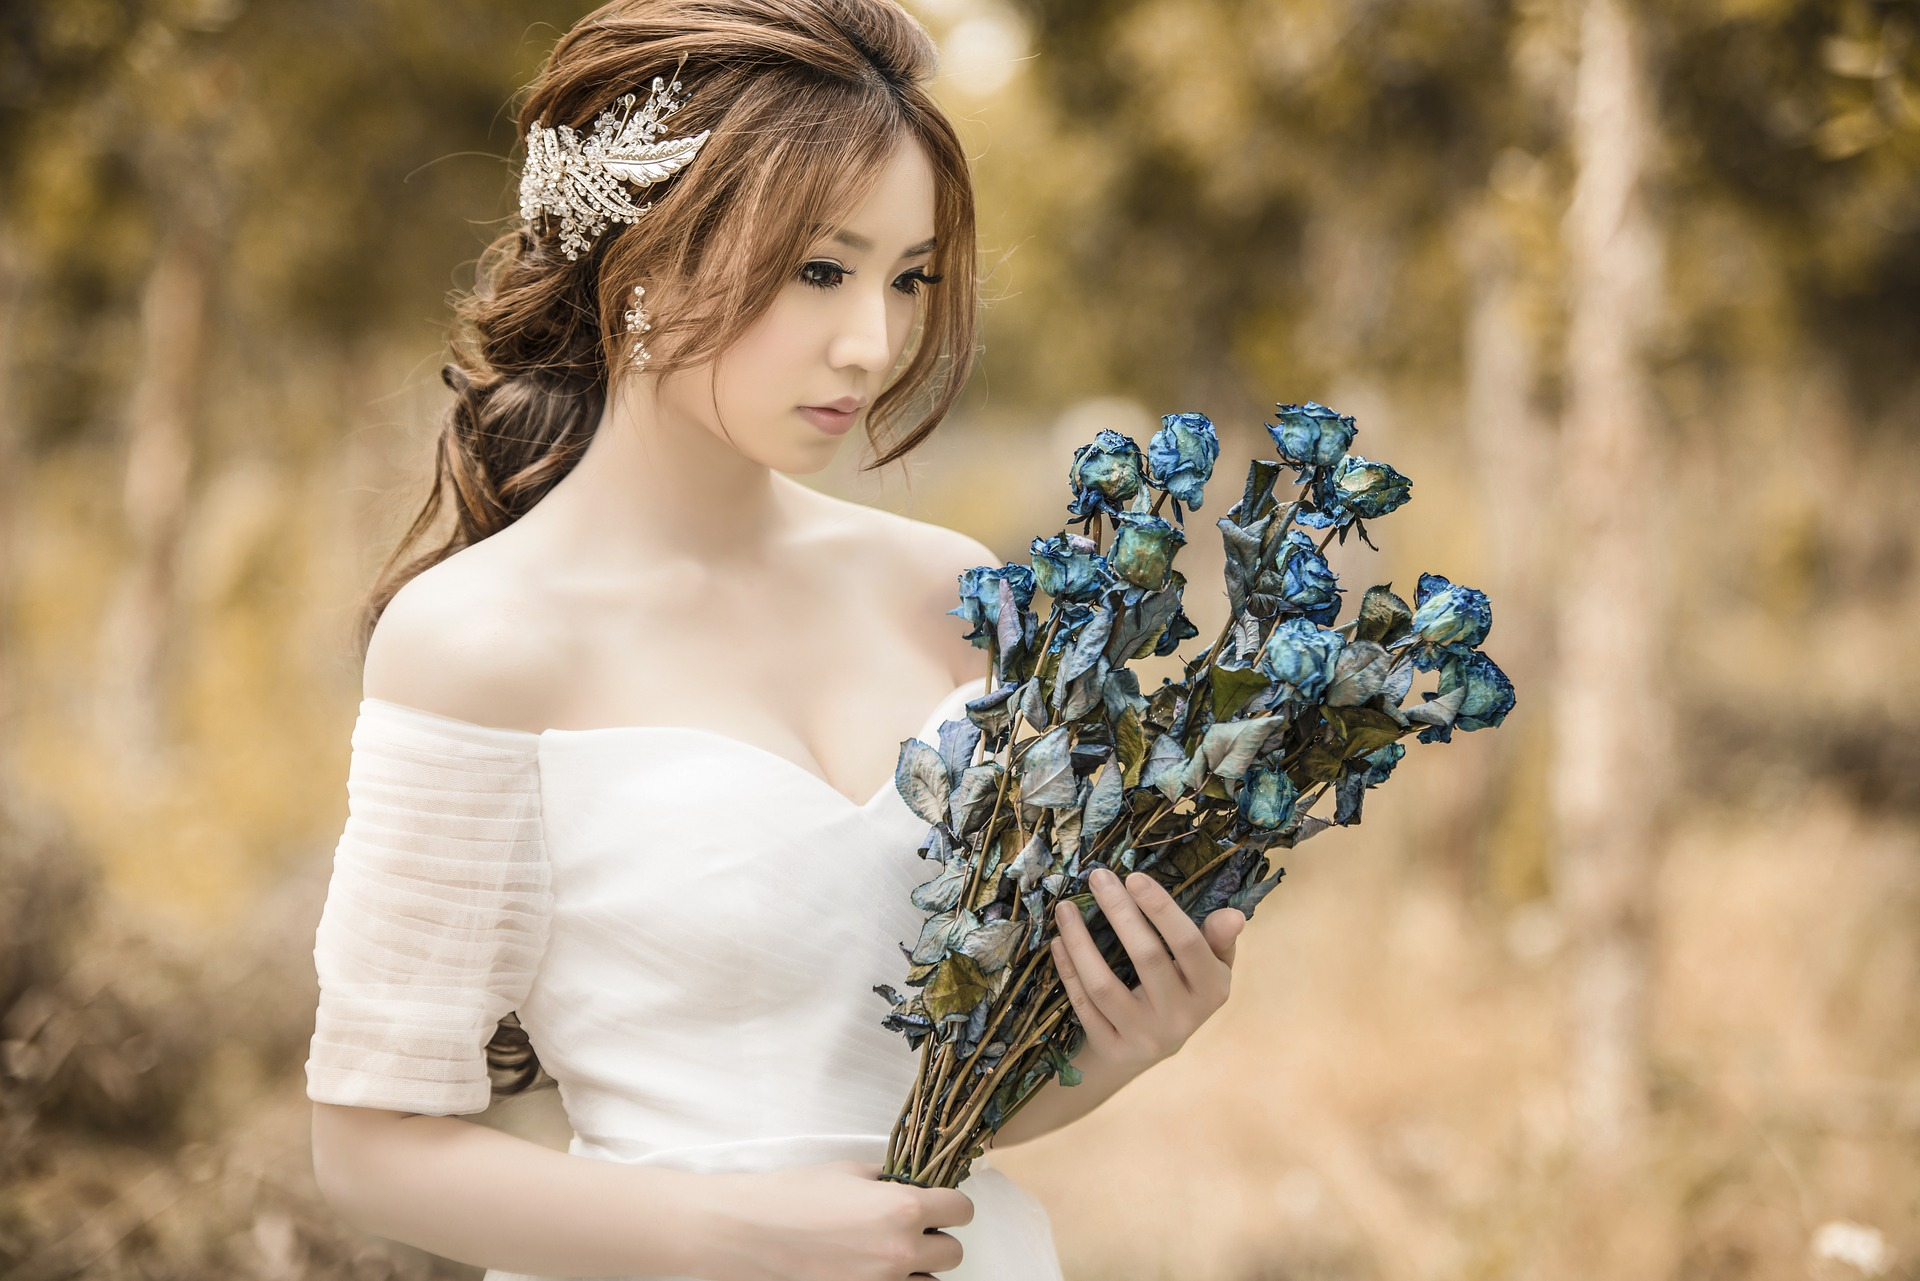 A bride looking at her bouquet